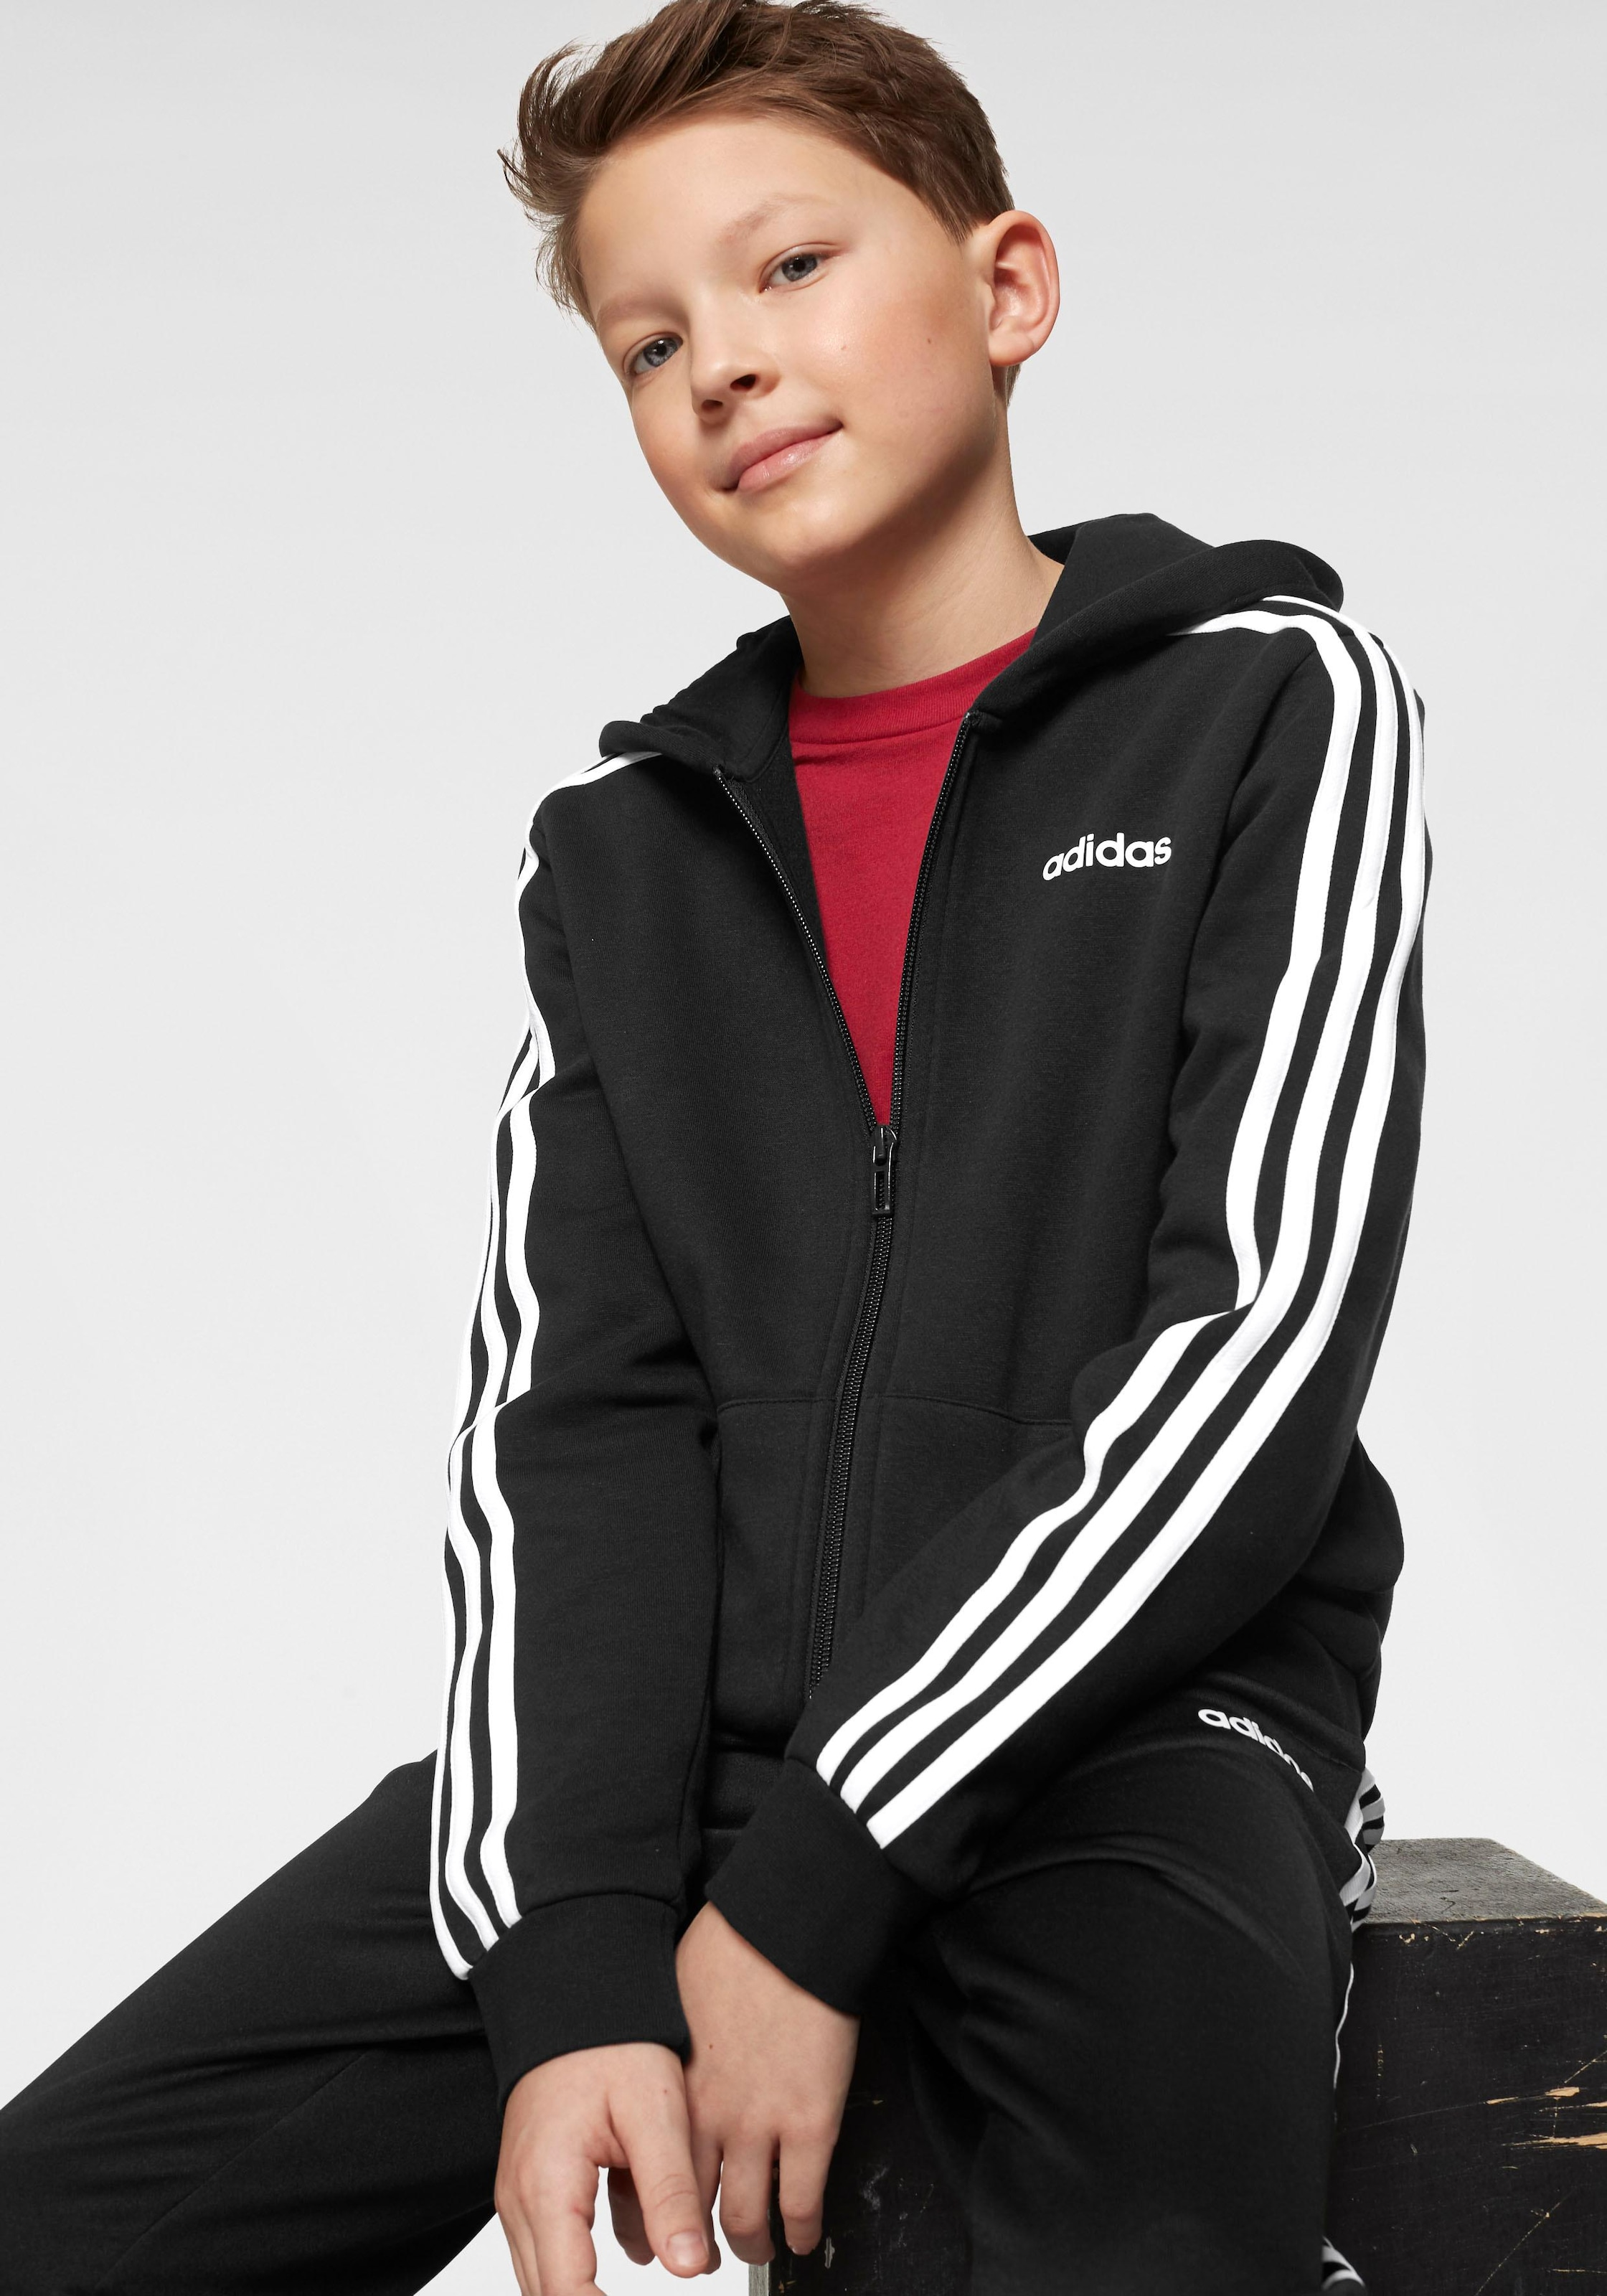 adidas Kapuzensweatjacke YOUNG BOY ESSENTIAL 3 STRIPES FULLZIP HOODY | 04060515284407